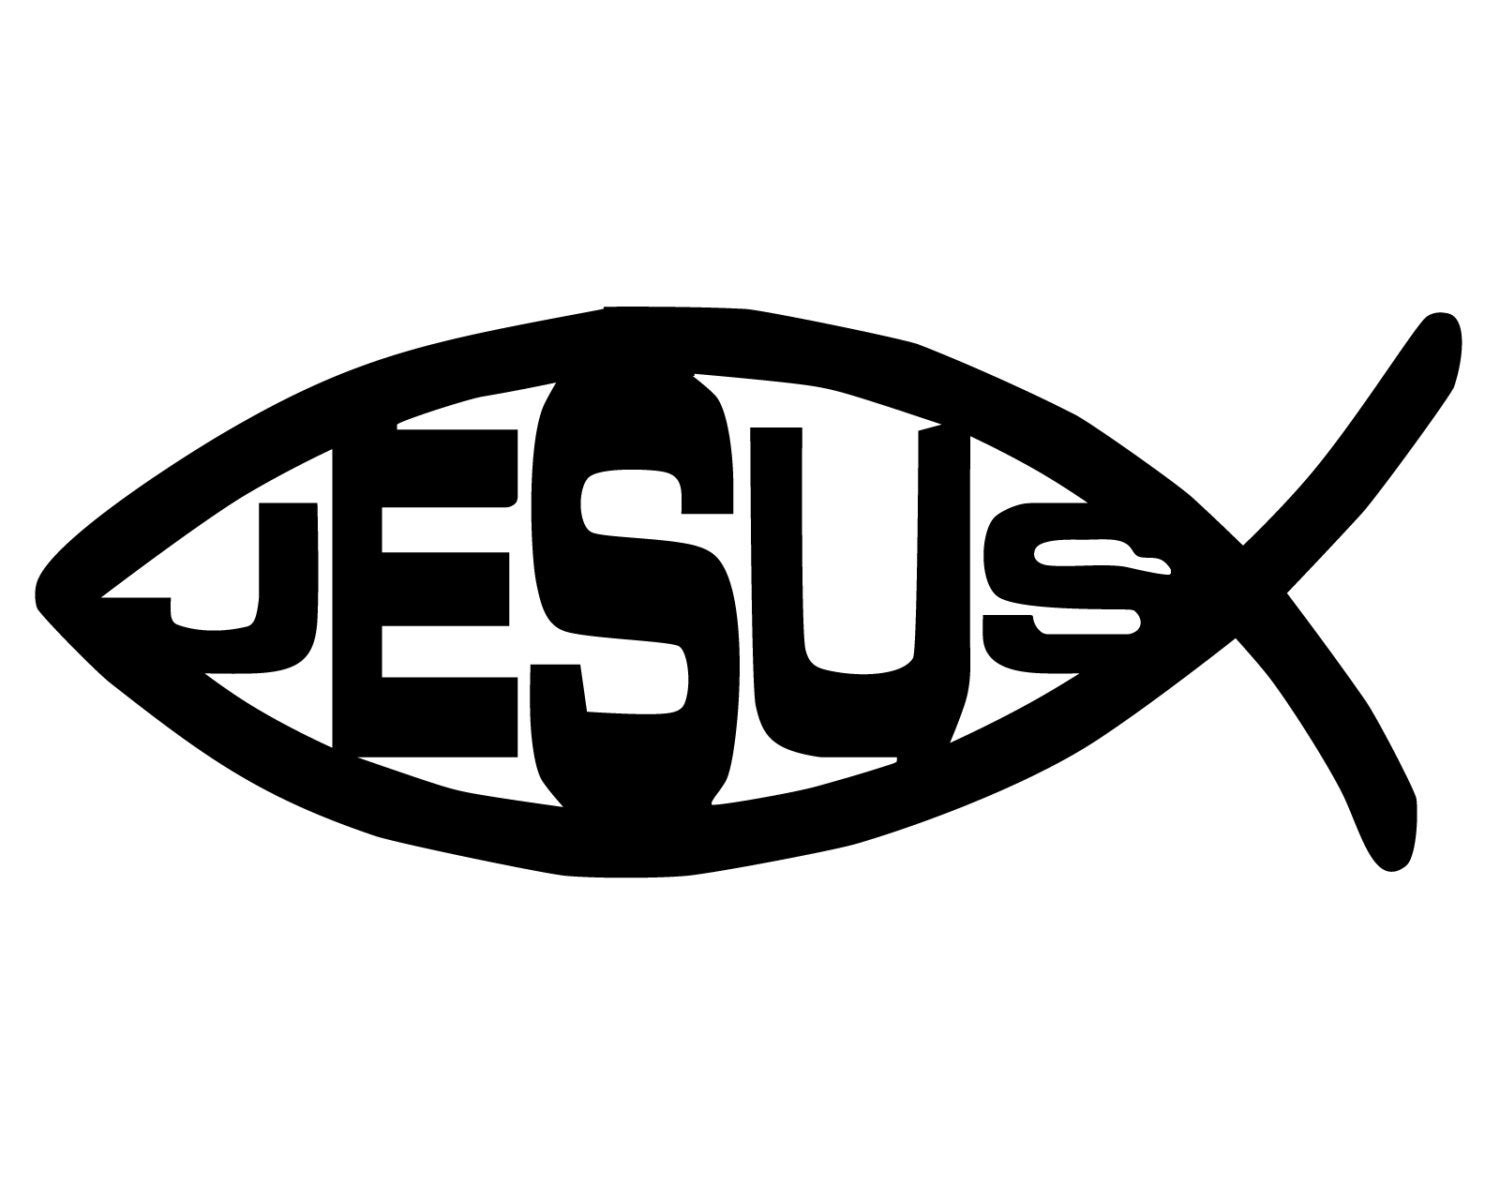 Jesus Fish Decal Jesus Fish Sticker Christian Fish Symbol Etsy